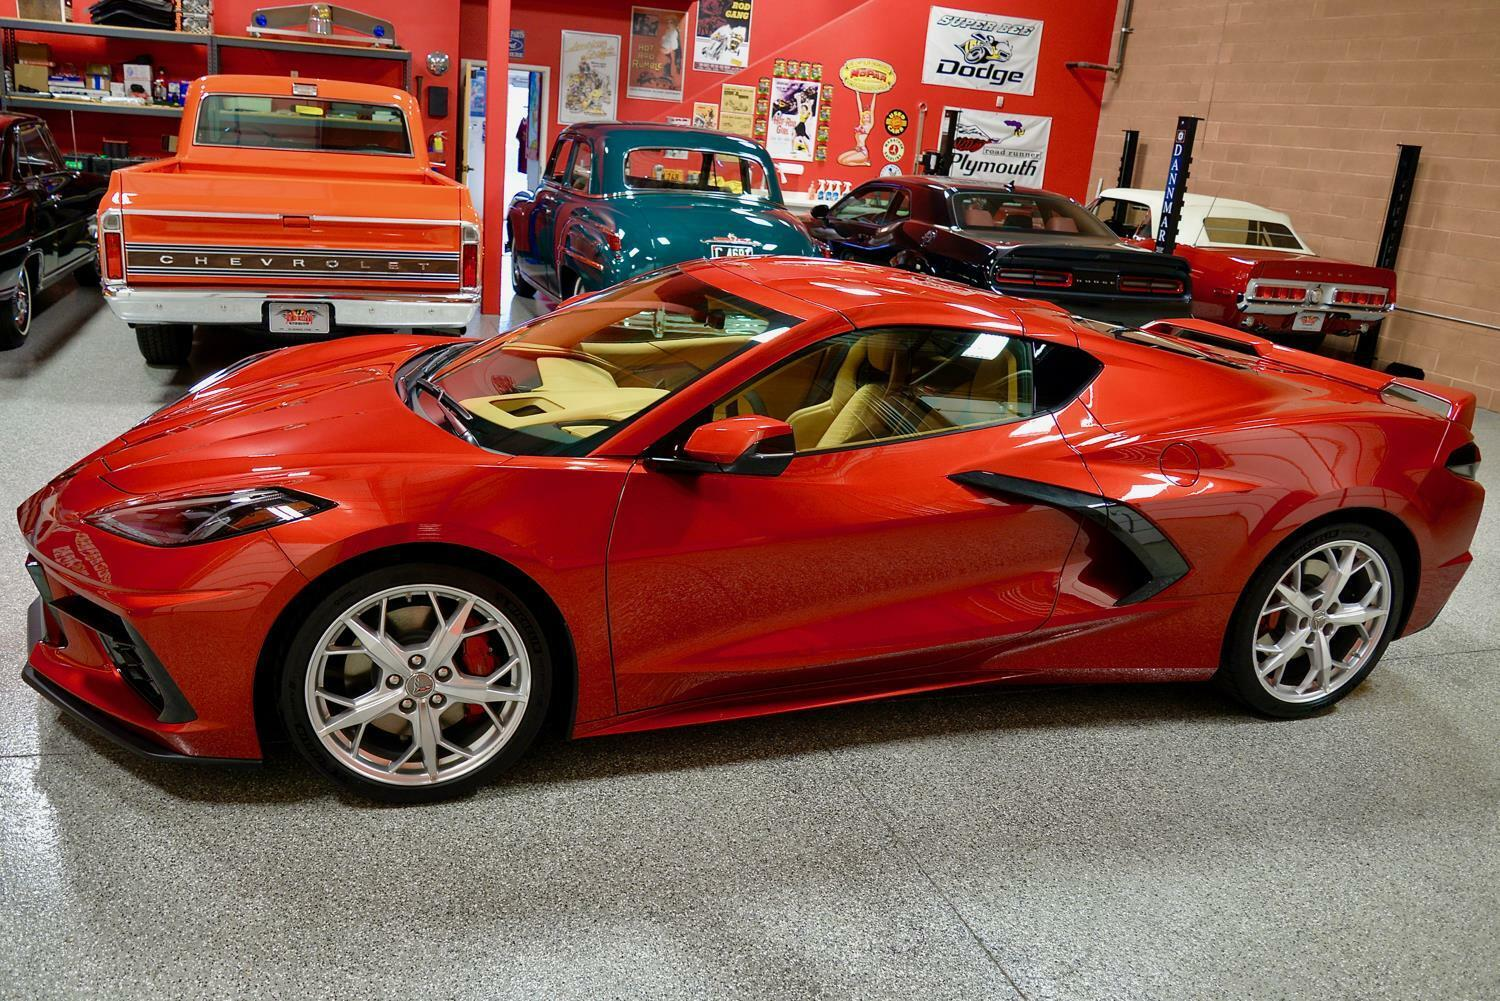 2021 Red Chevrolet Corvette  3LT | C7 Corvette Photo 7